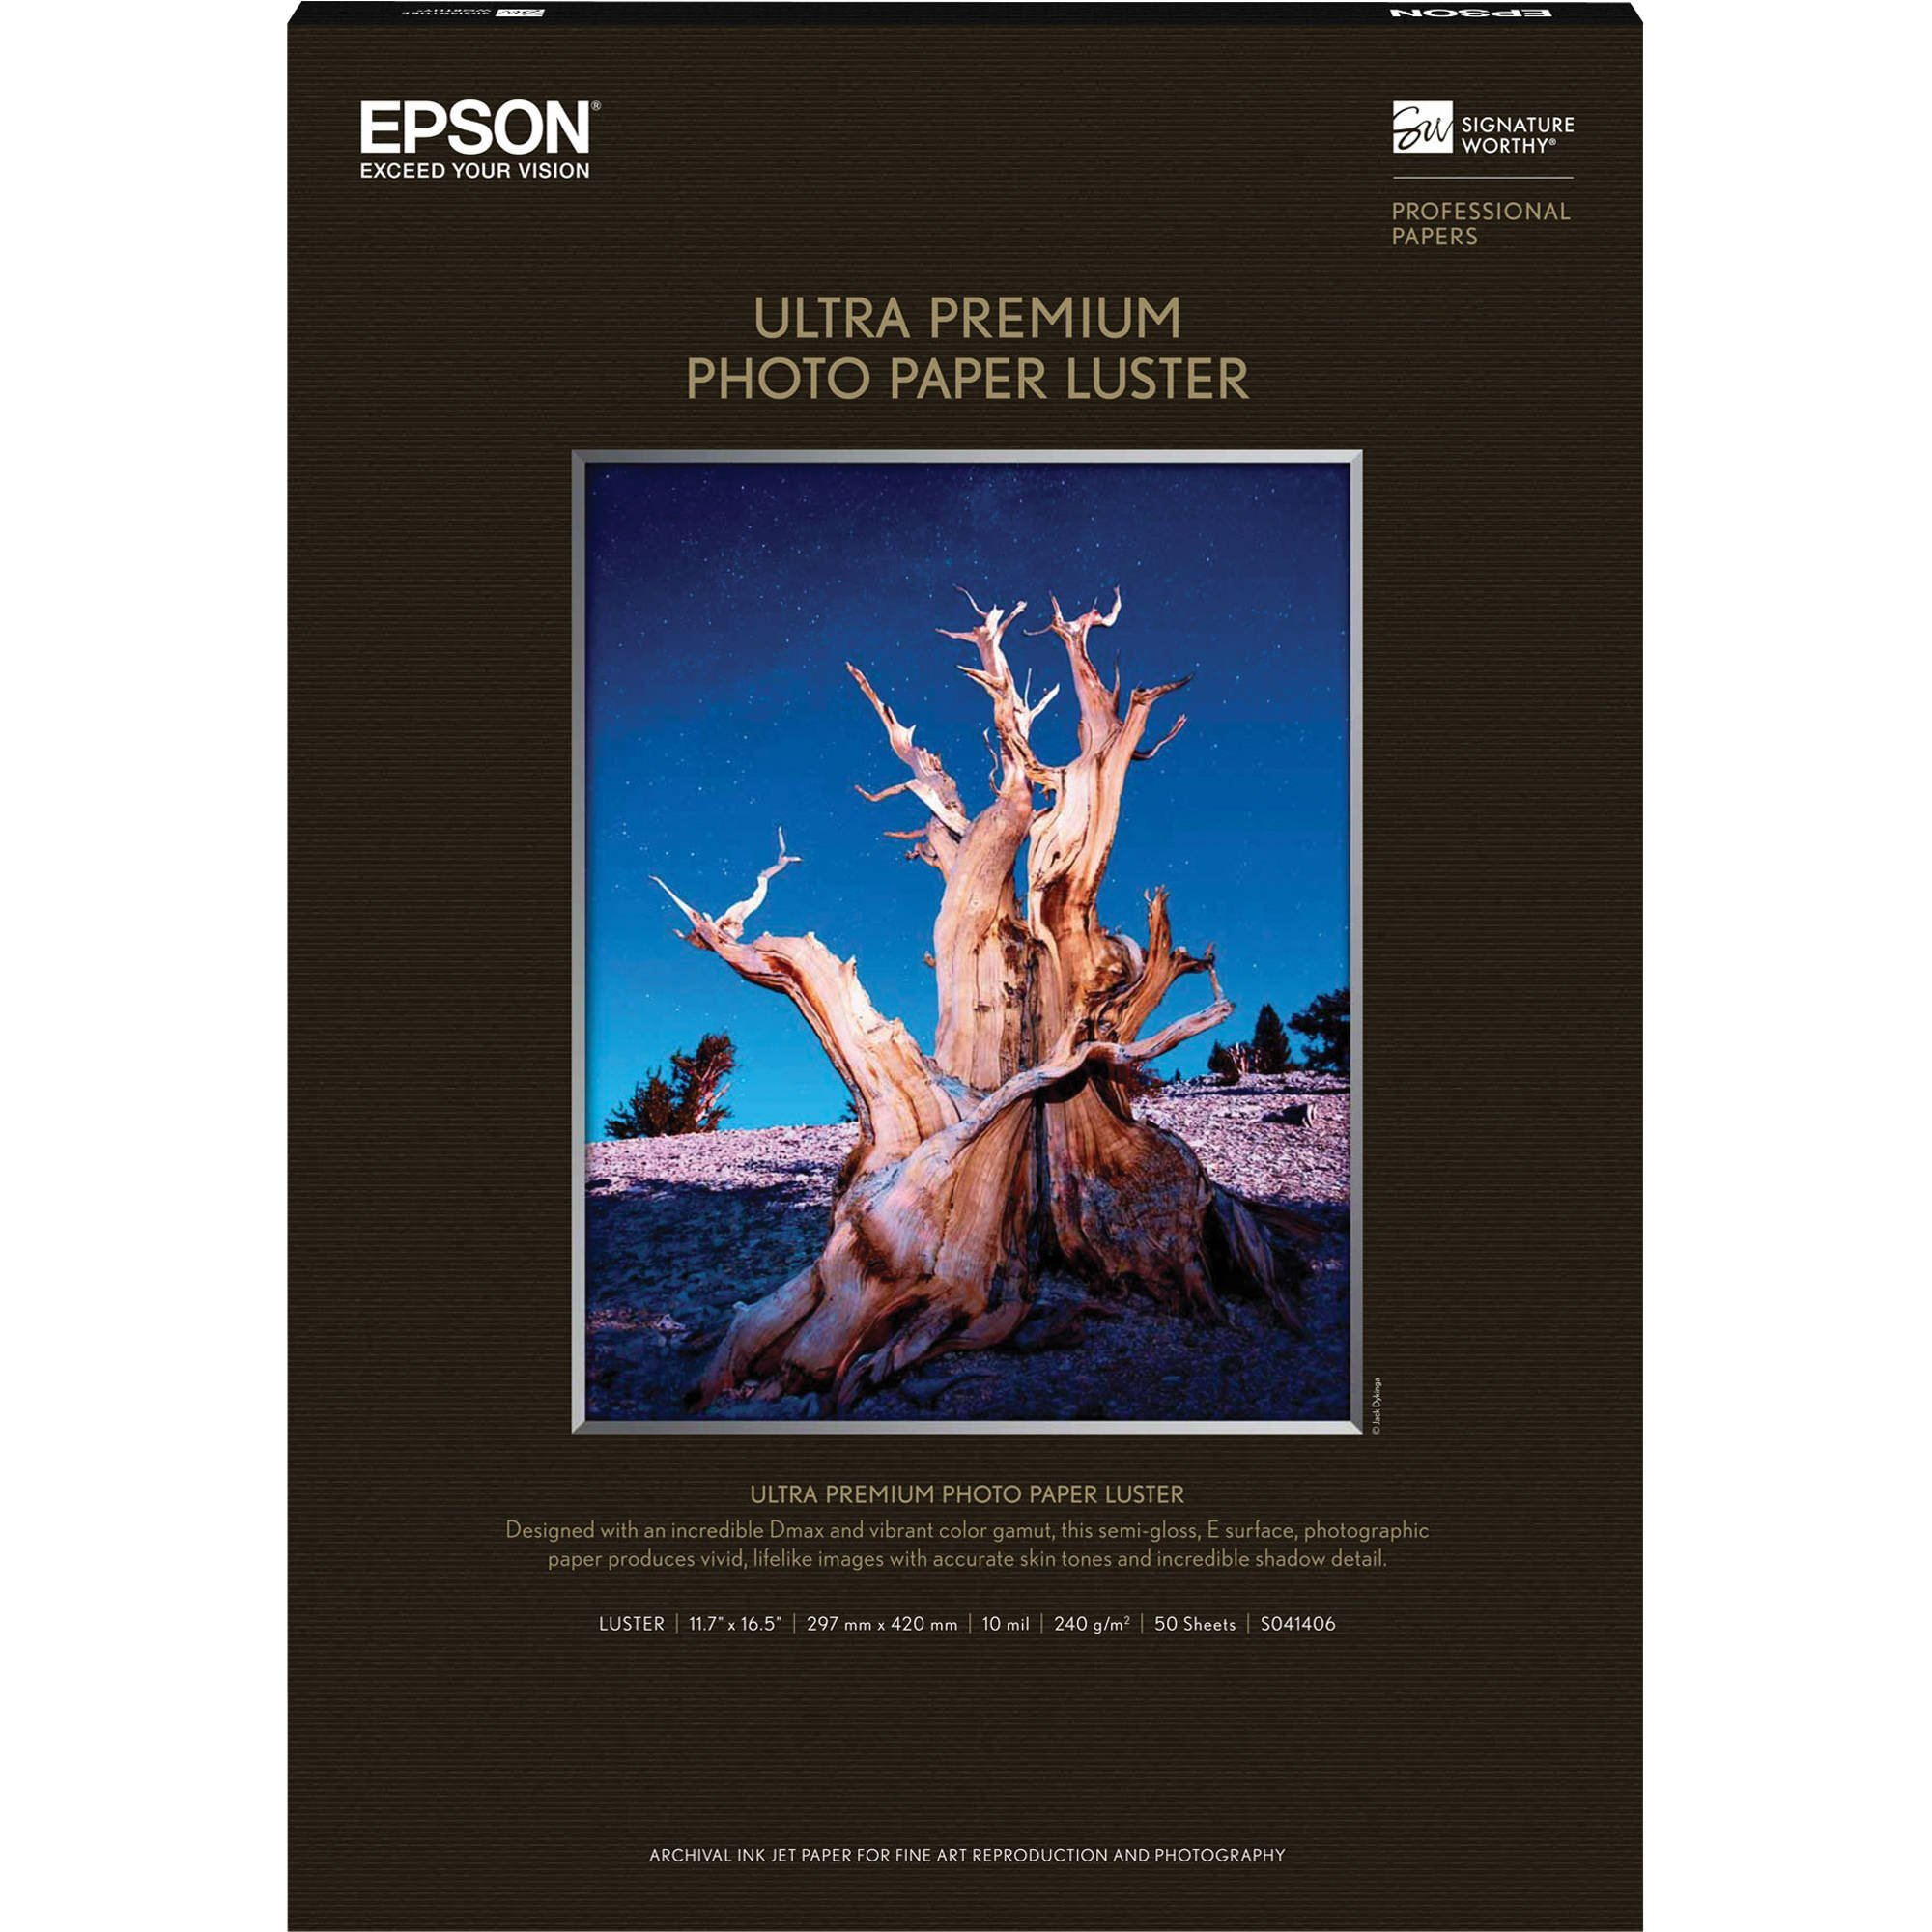 Epson Ultra Premium Photo Paper Luster, 11.7''x16.5'', 50 Sheets/Pkg, White (S041406)